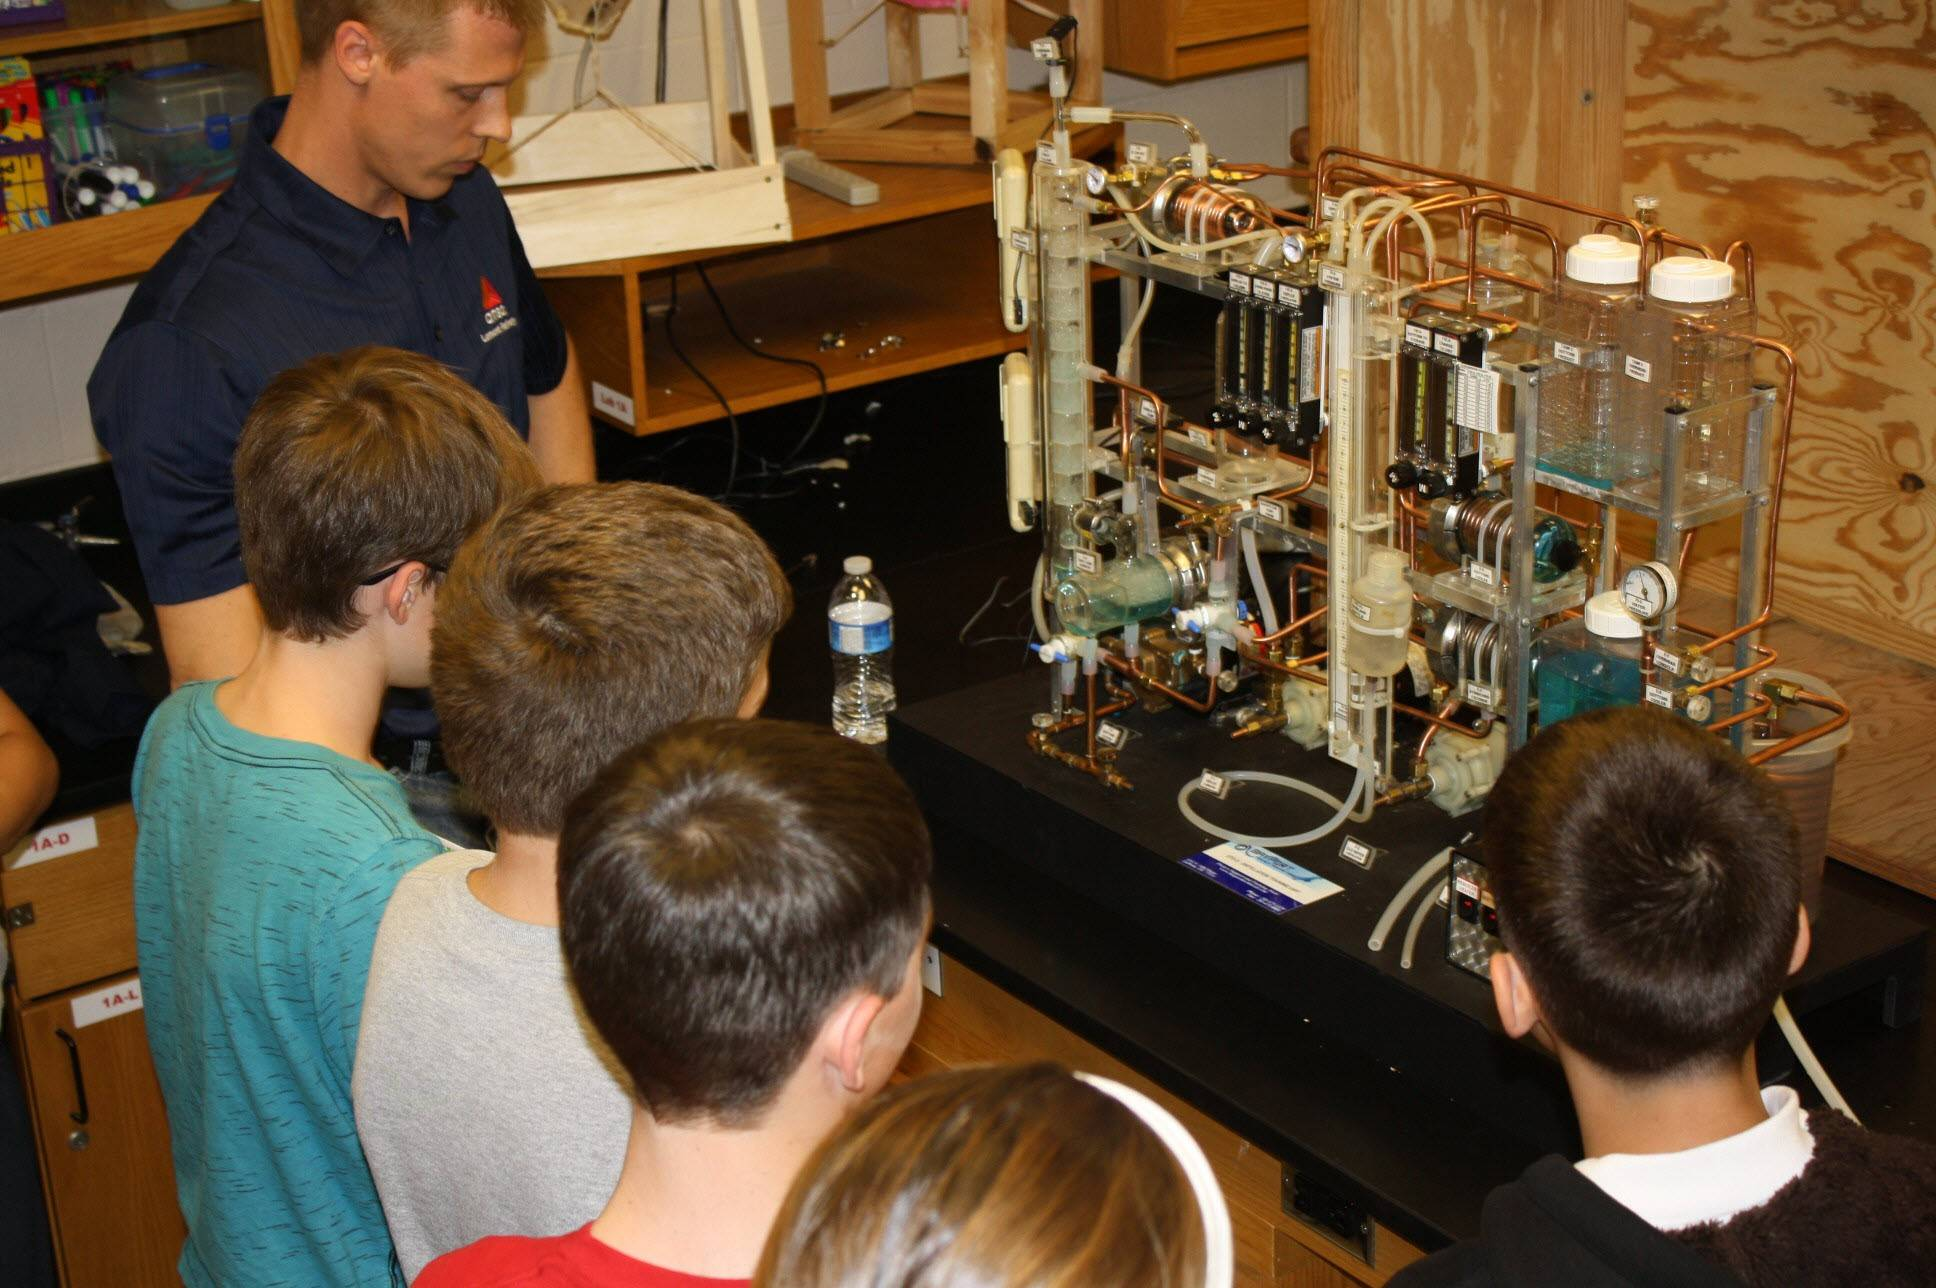 A Citgo refinery model will be one of the activities at Teen Ignite.